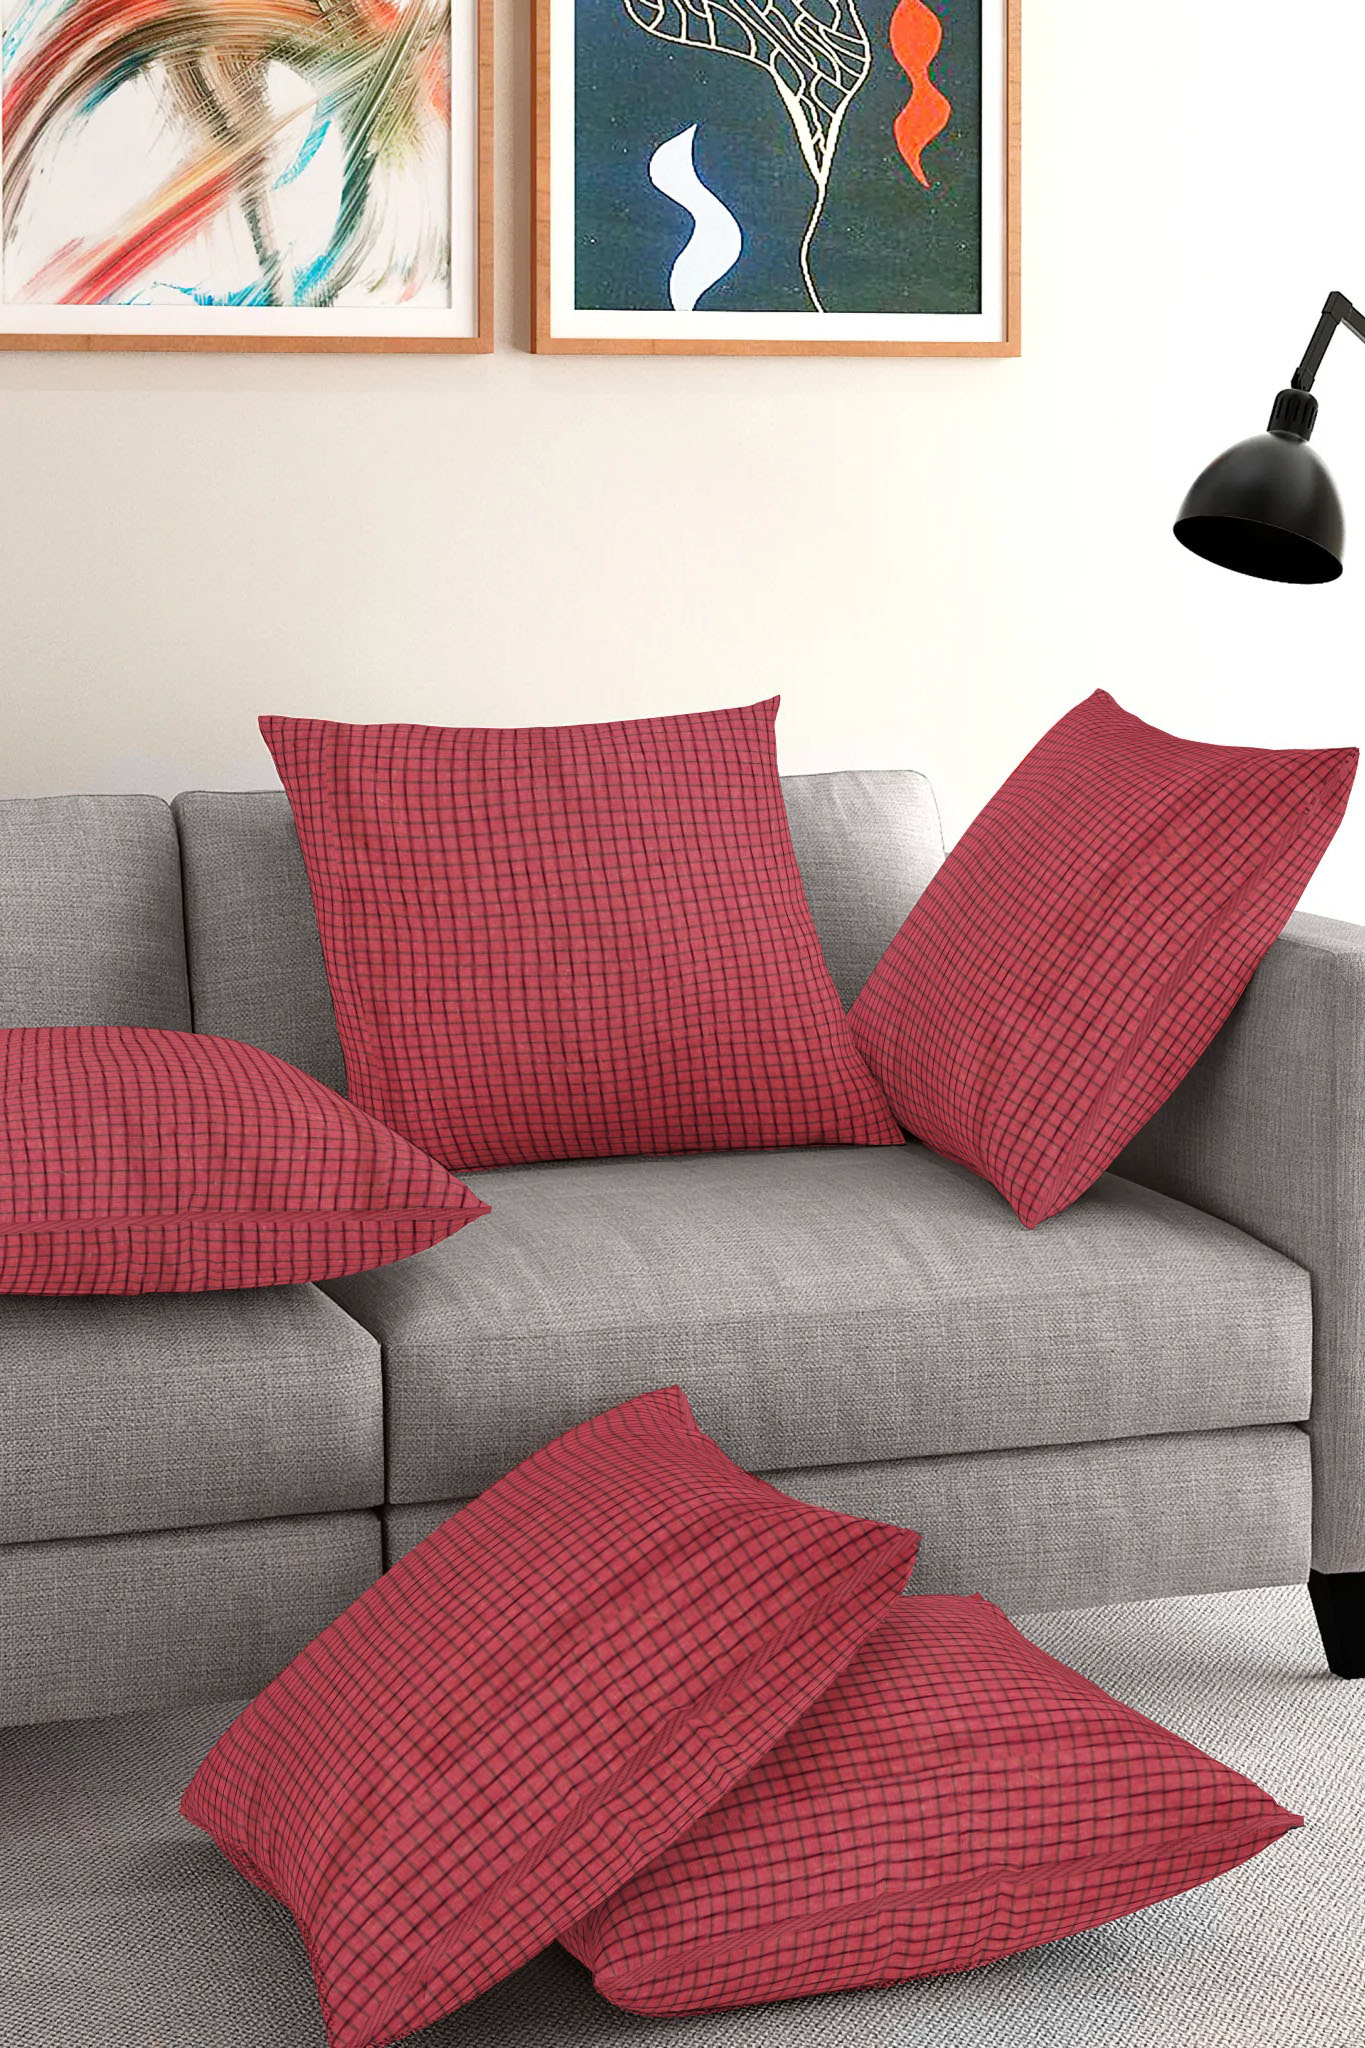 Set of 5-Maroon Black Cotton Cushion Cover-35412-16x16 Inches